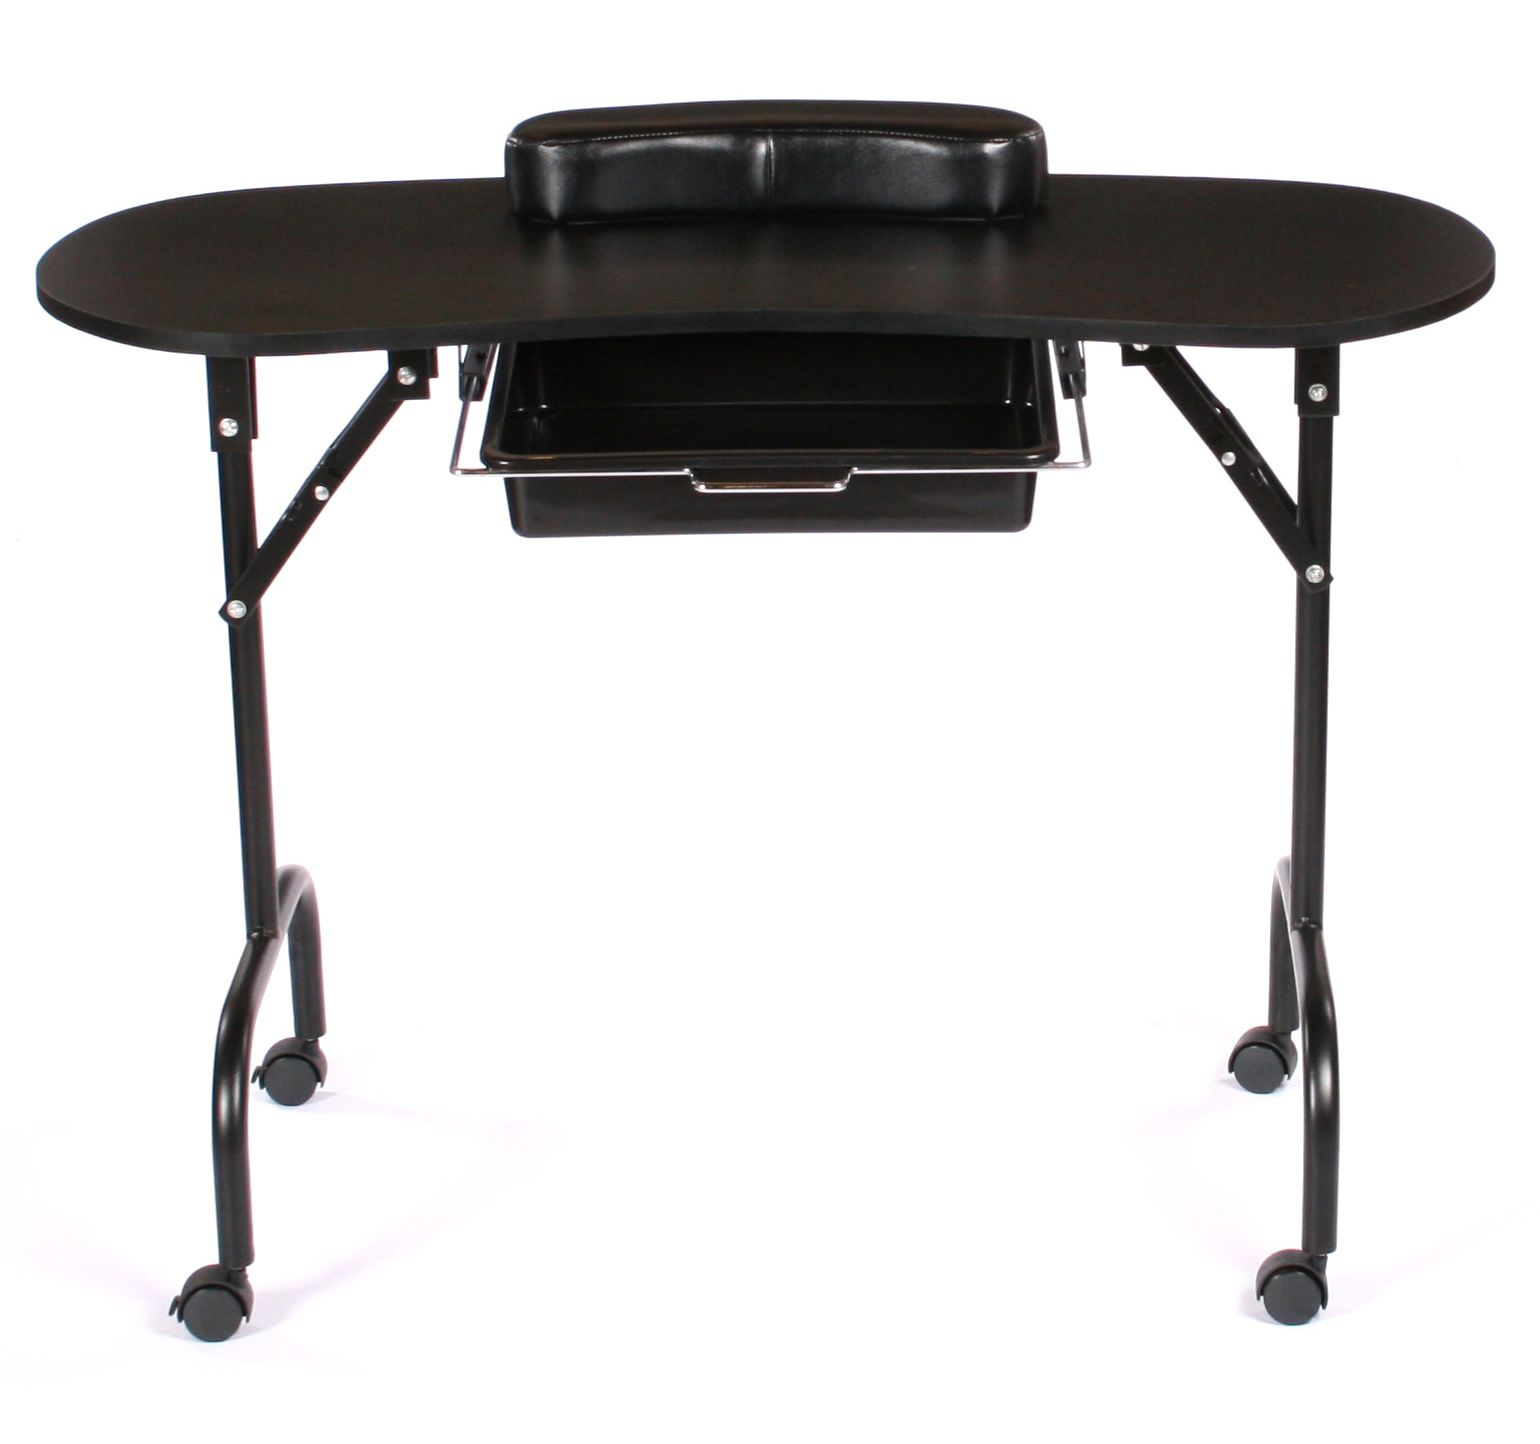 Urbanity Black Portable Manicure Table Manicure table